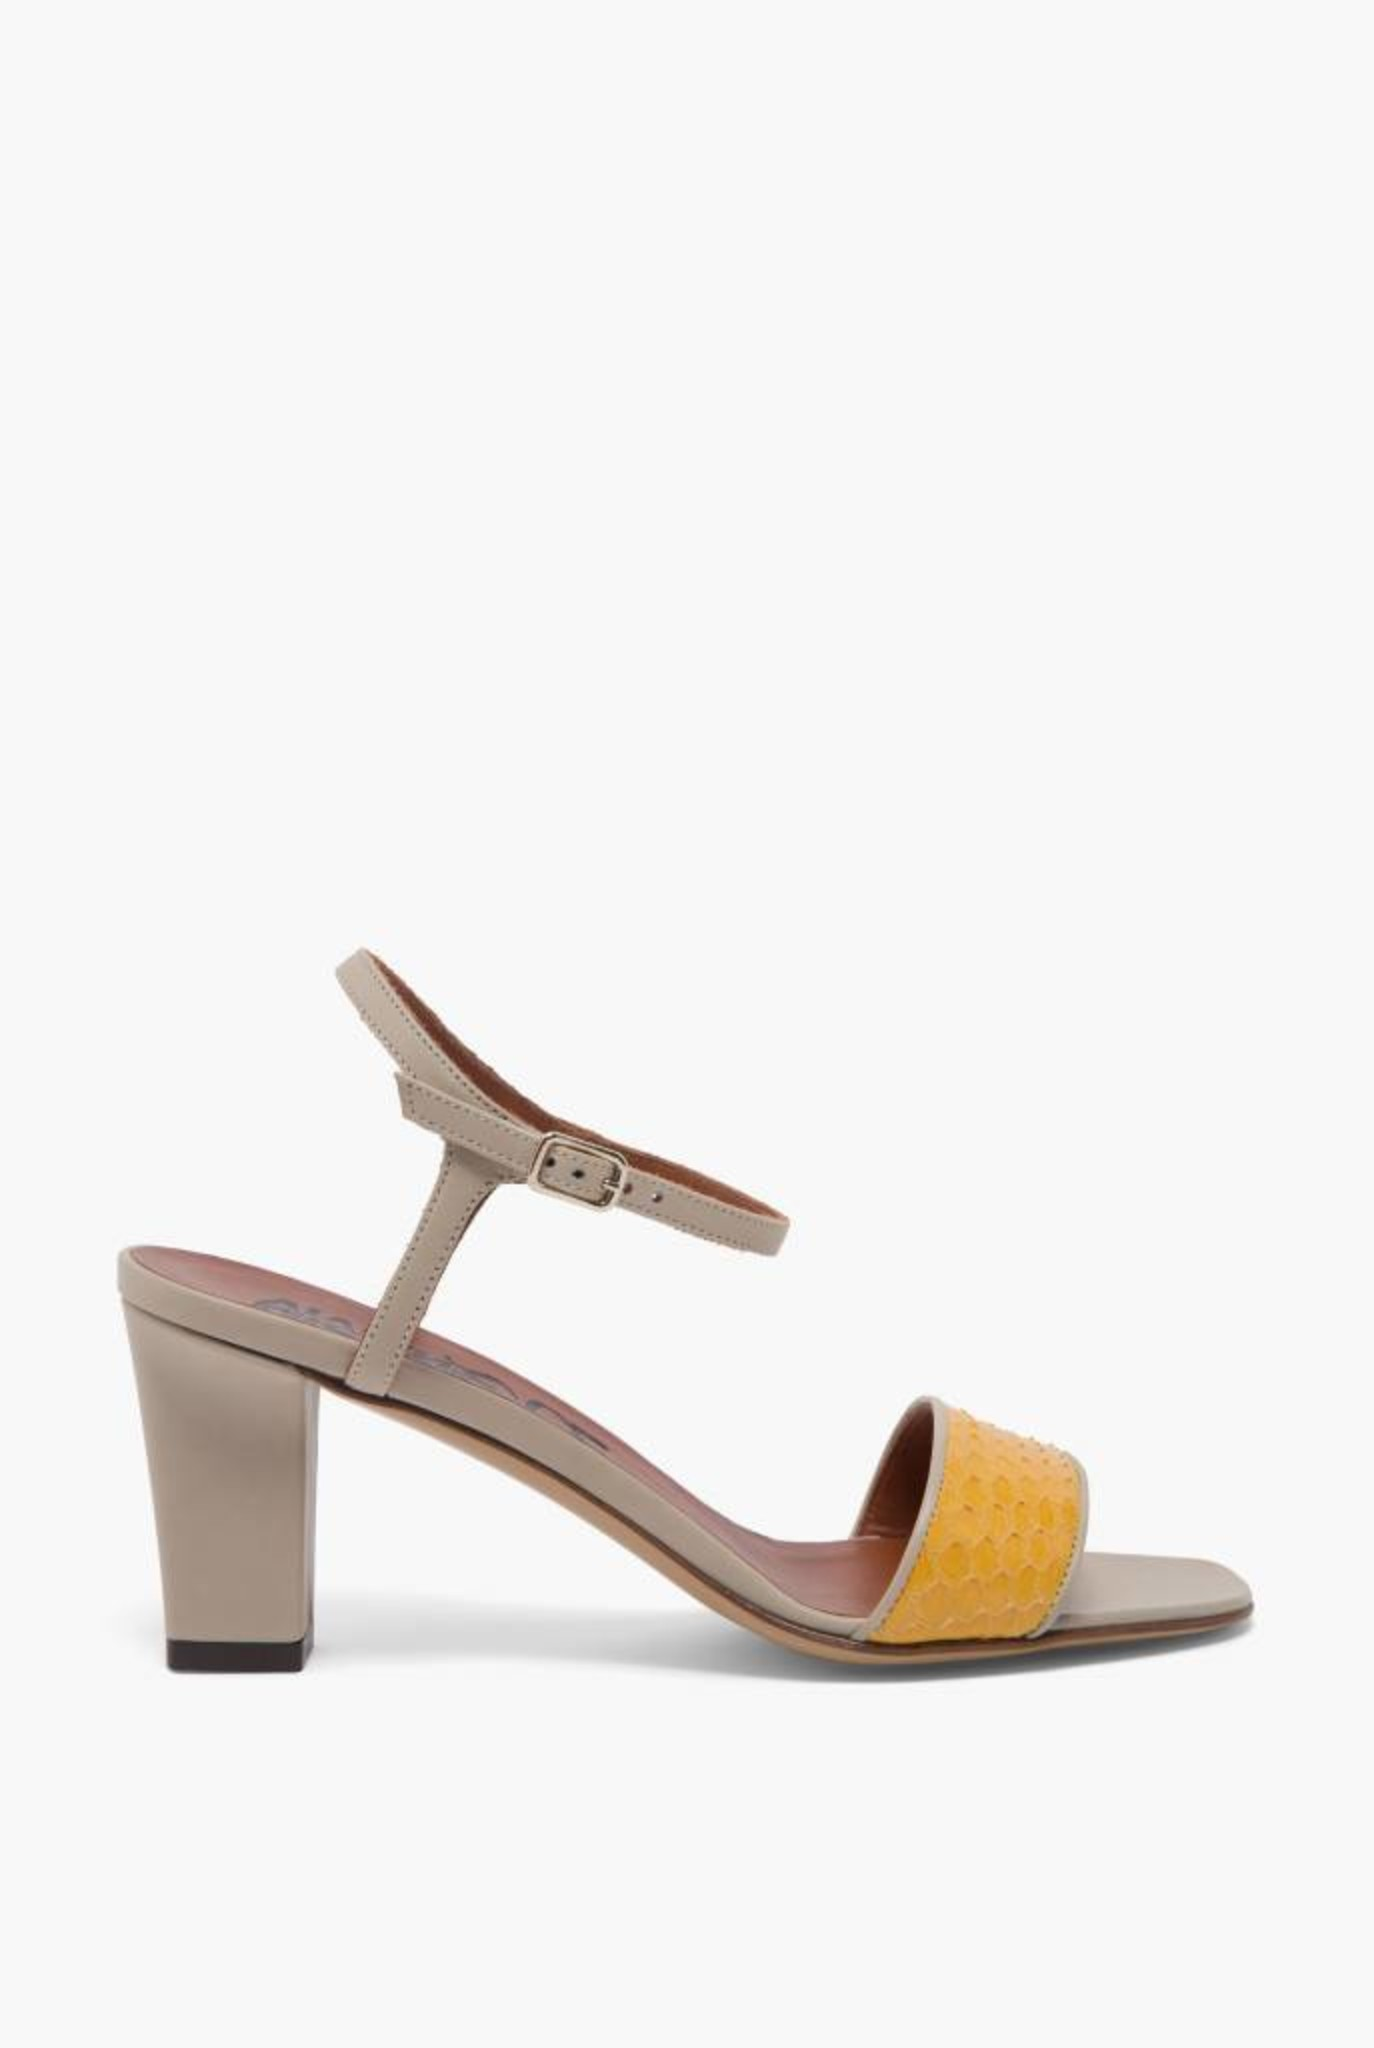 Hellza sandal yellow grey